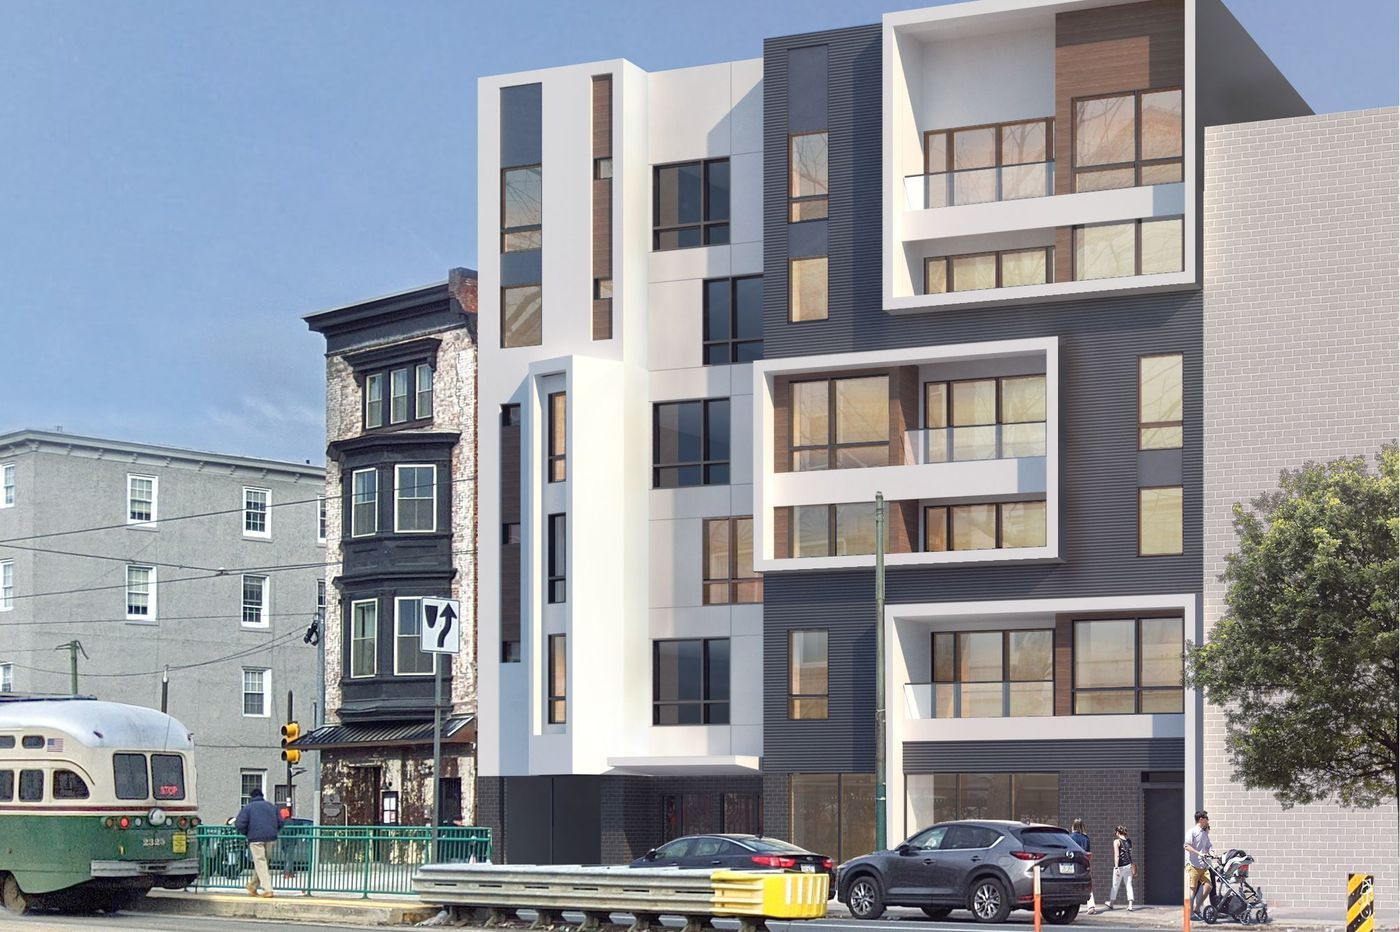 Philadelphia Inquirer Runs Story on New S. Kensington Apartment Project